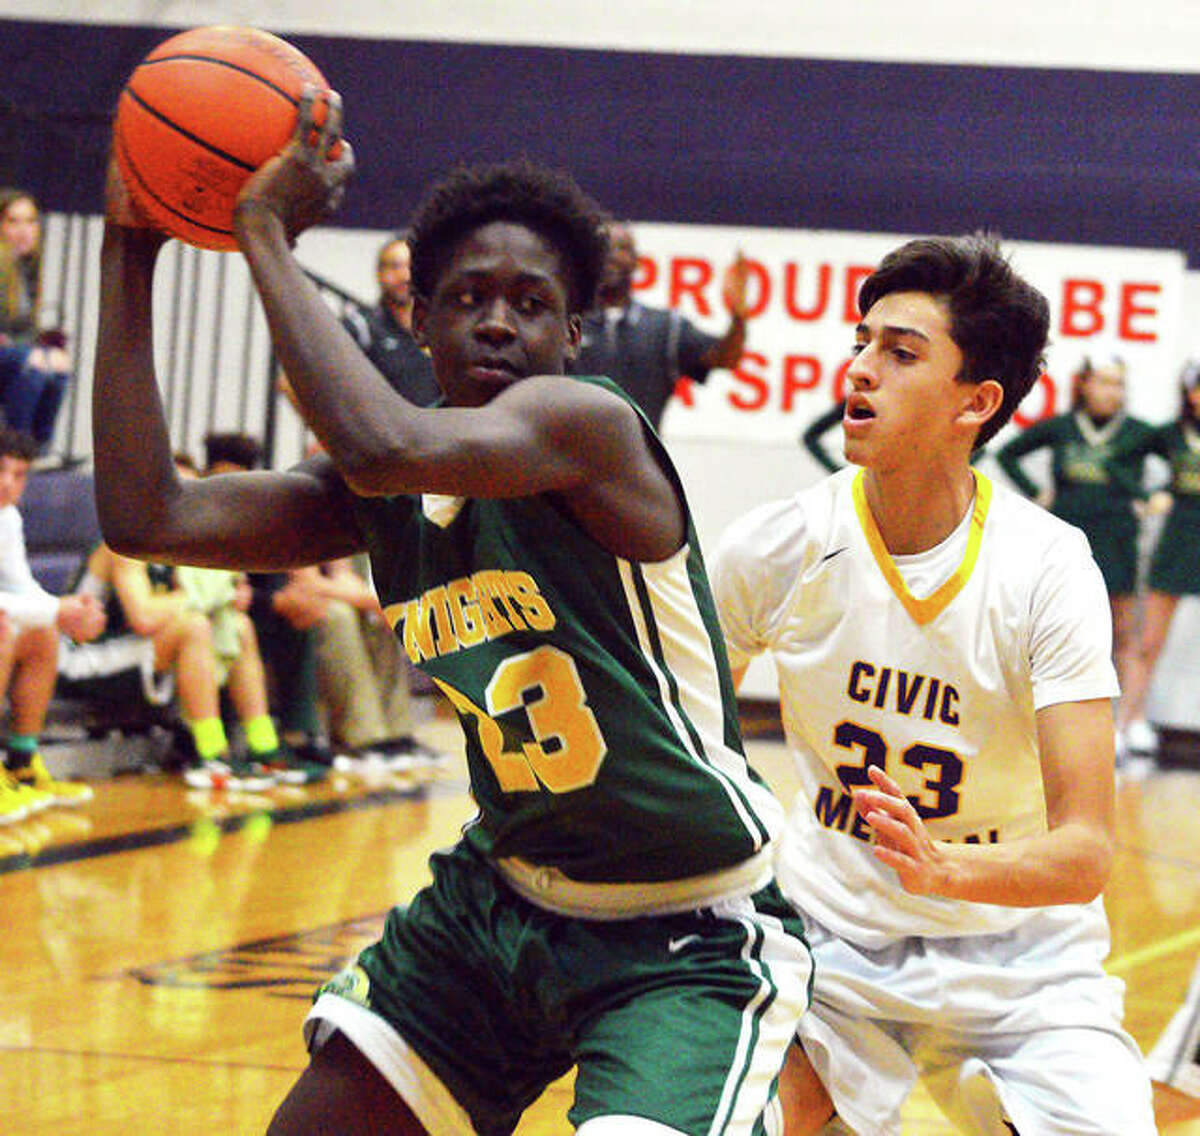 Metro-East Lutheran freshman DeMarcus Bean (left) looks to pass the ball while being guarded by Civic Memorial's Travis Hilligoss during the first quarter of Thursday's fifth-place semifinal in the Rick McGraw Memorial Invitational at Litchfield High School.